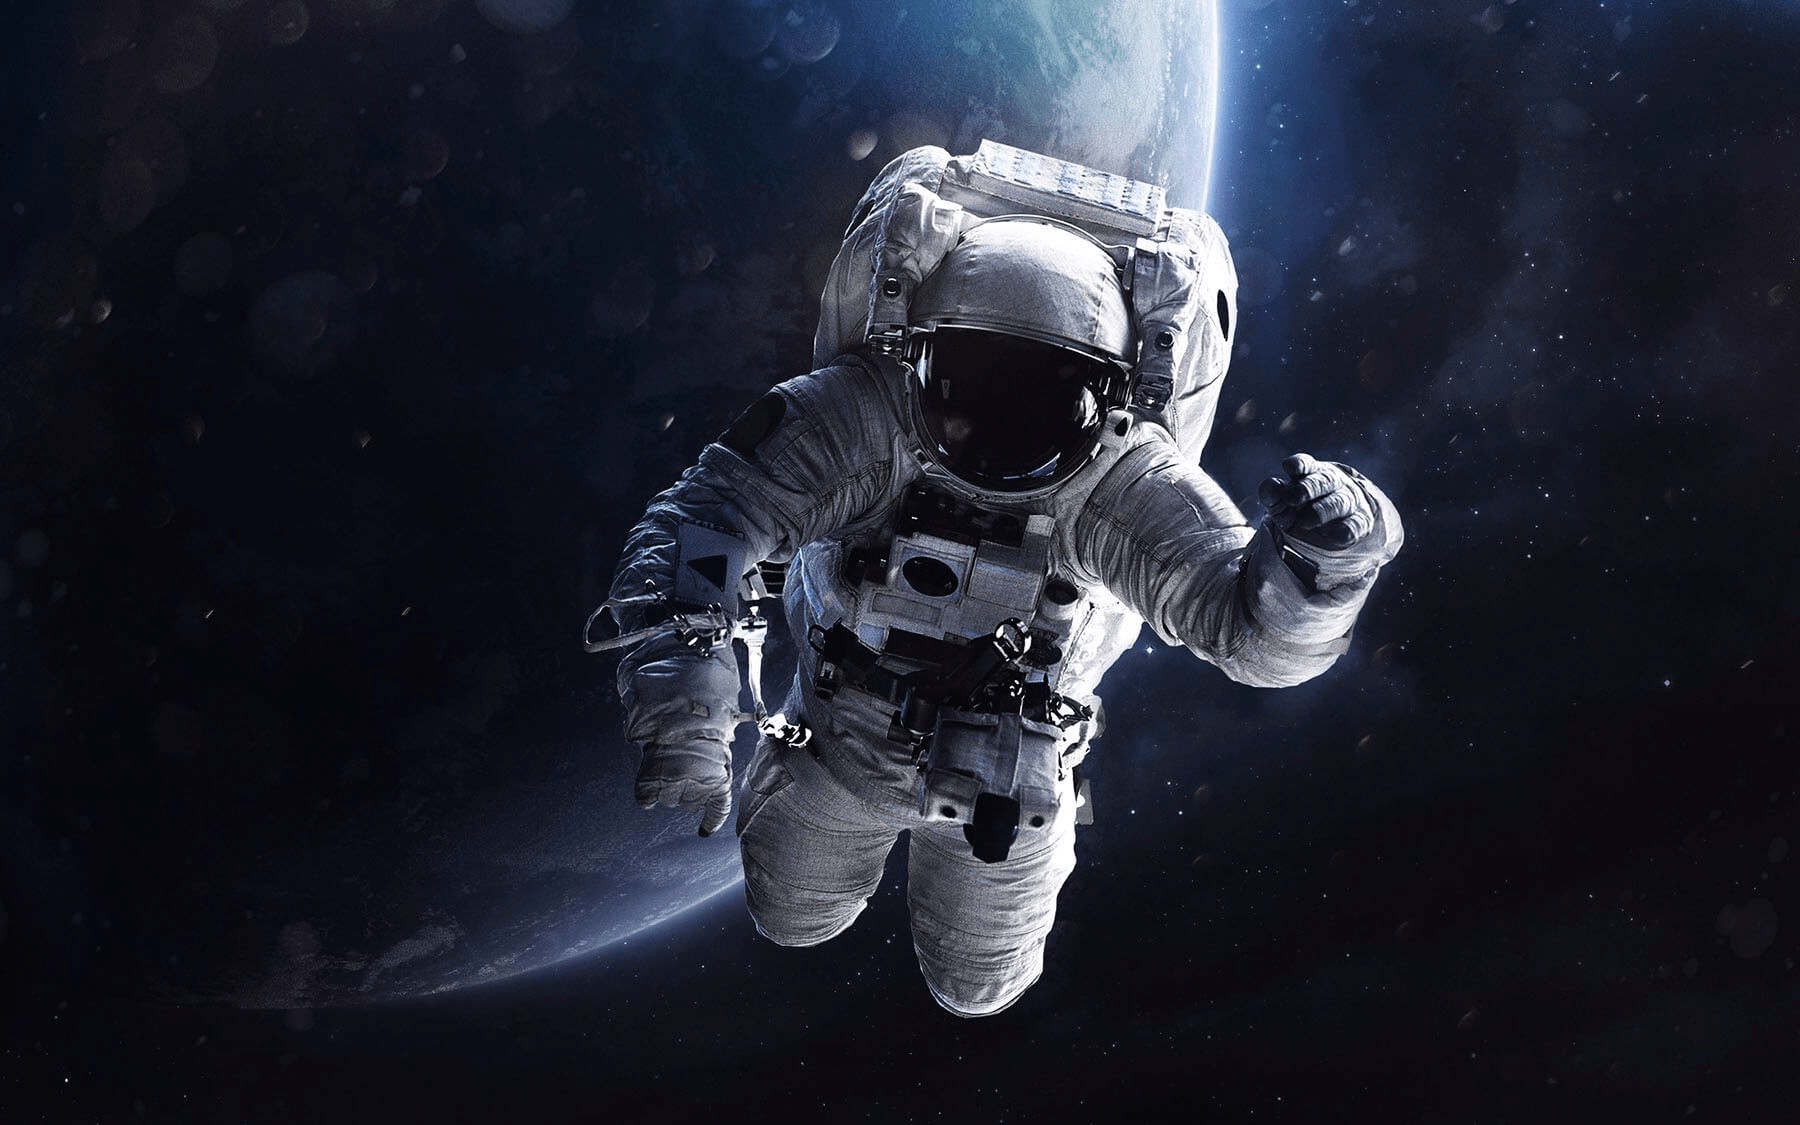 Astronaut example search